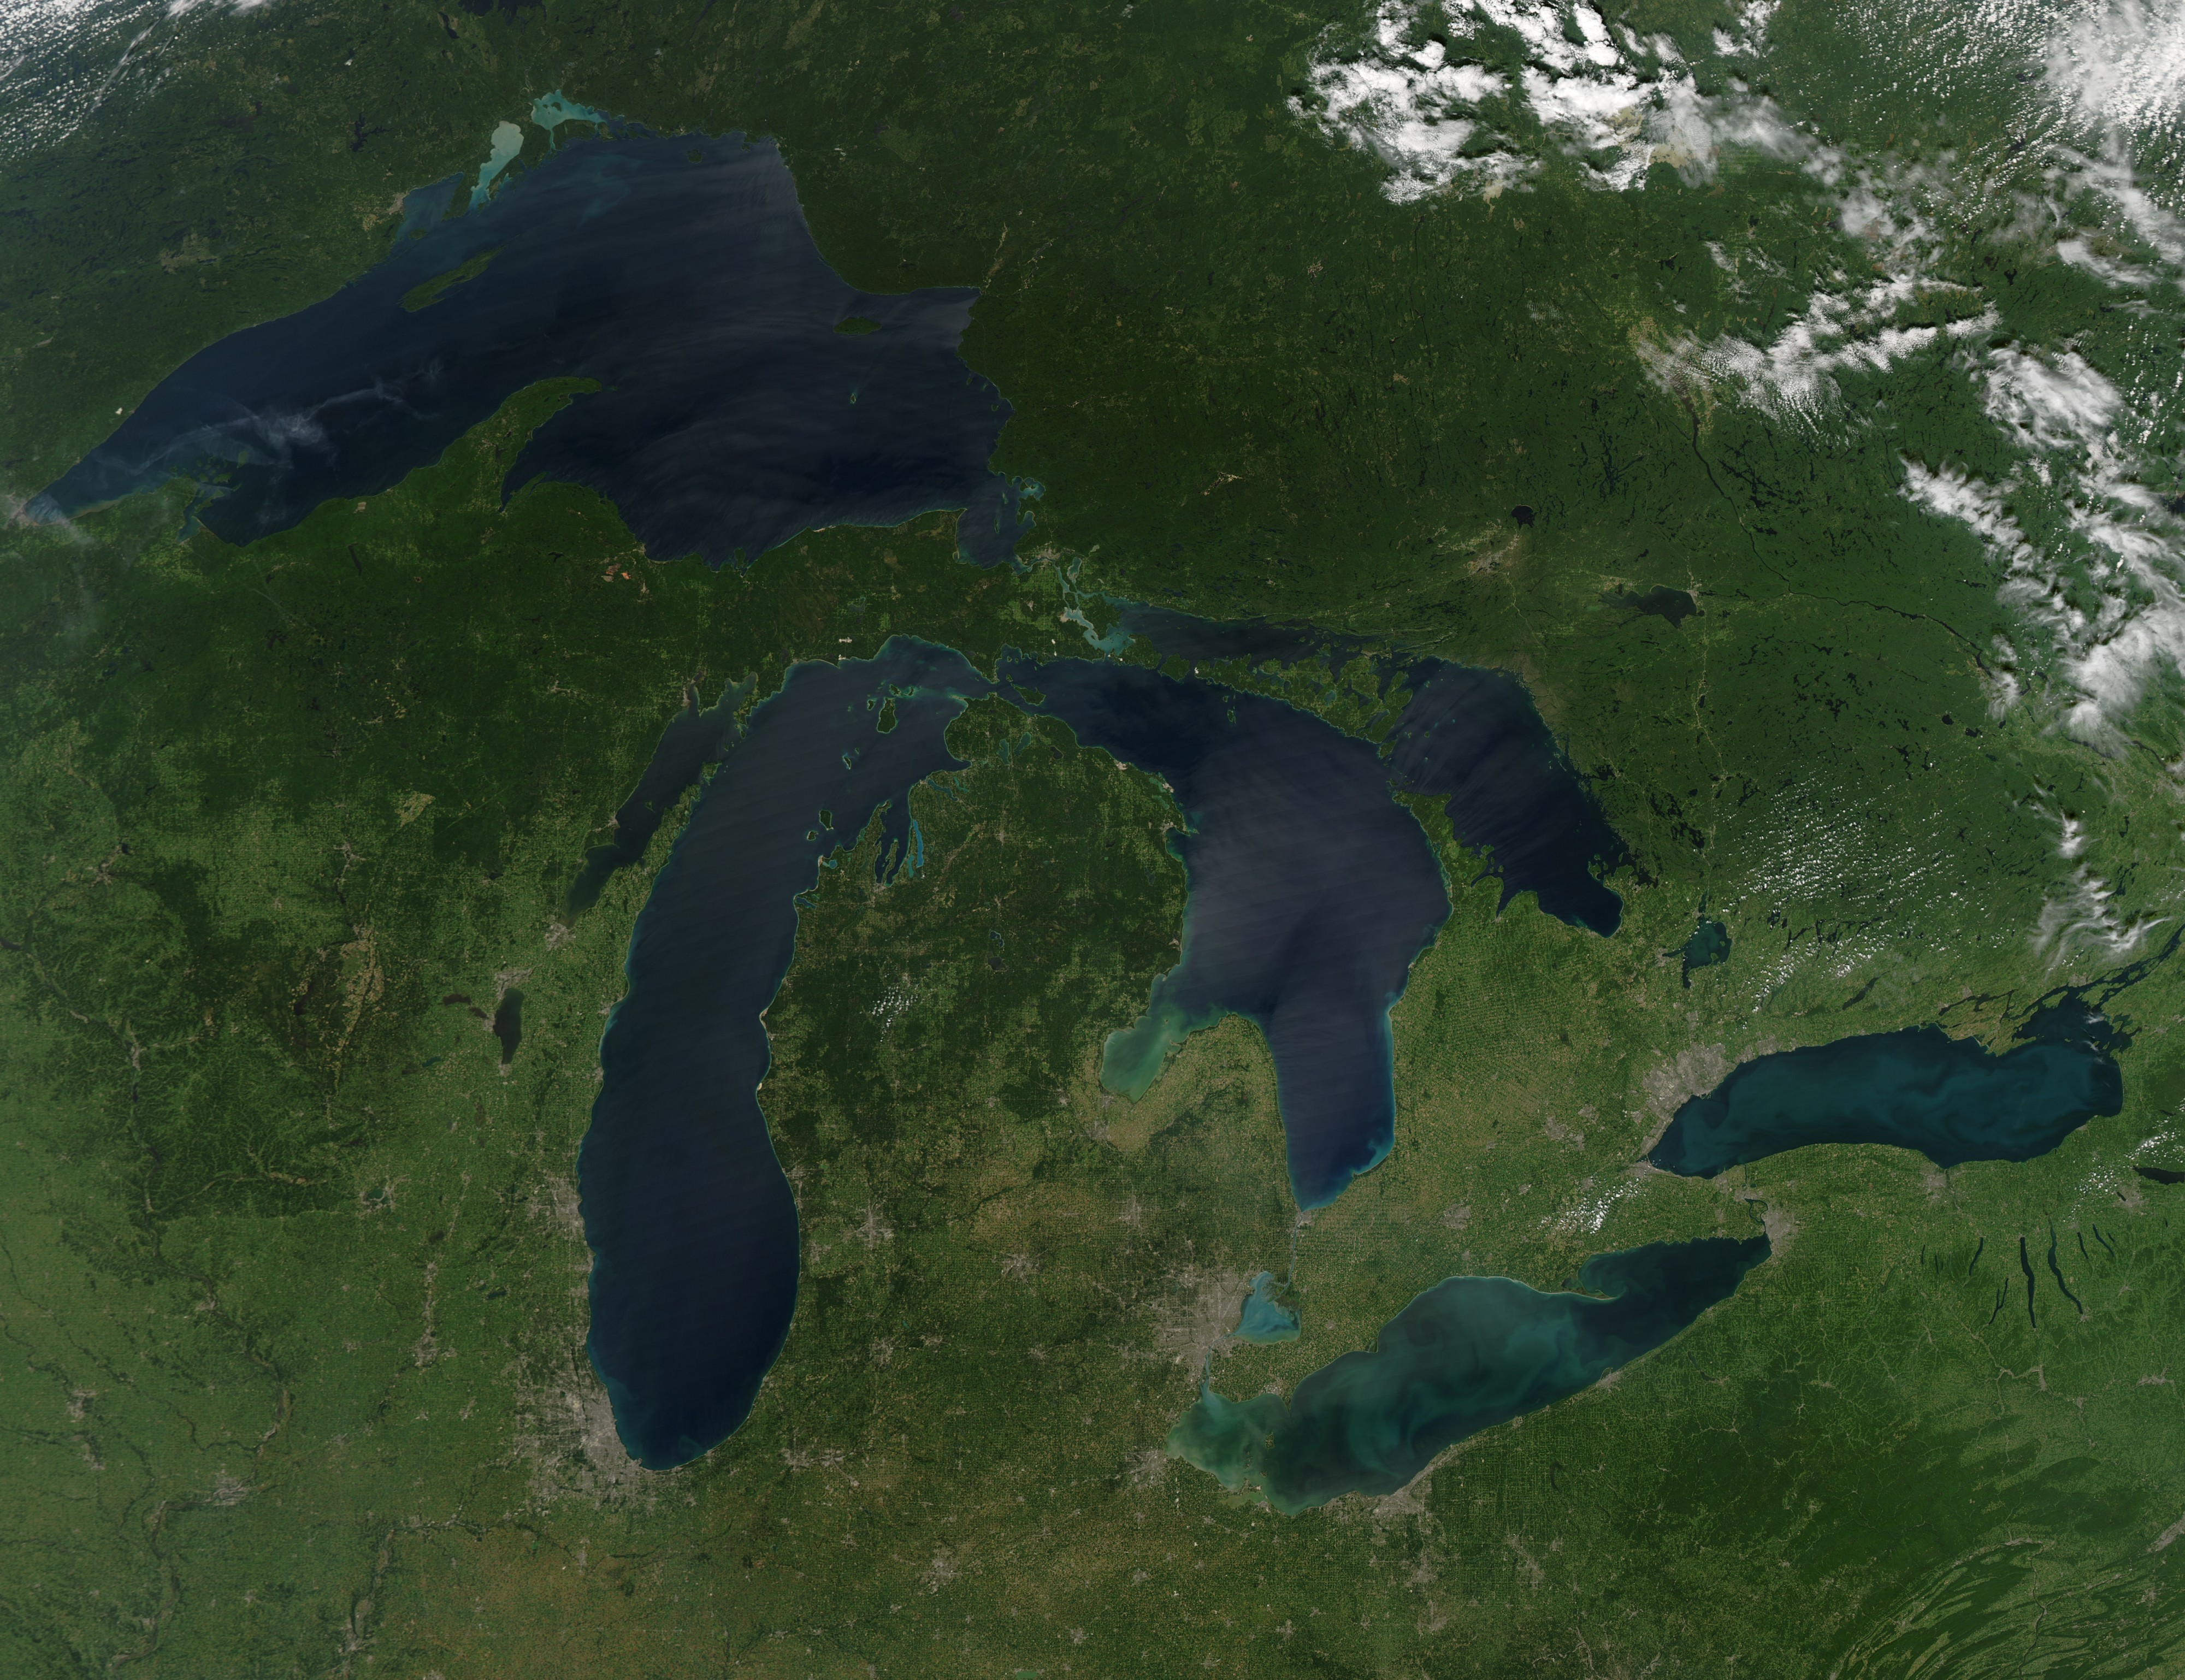 Great-Lakes-no-clouds-2010-08-28